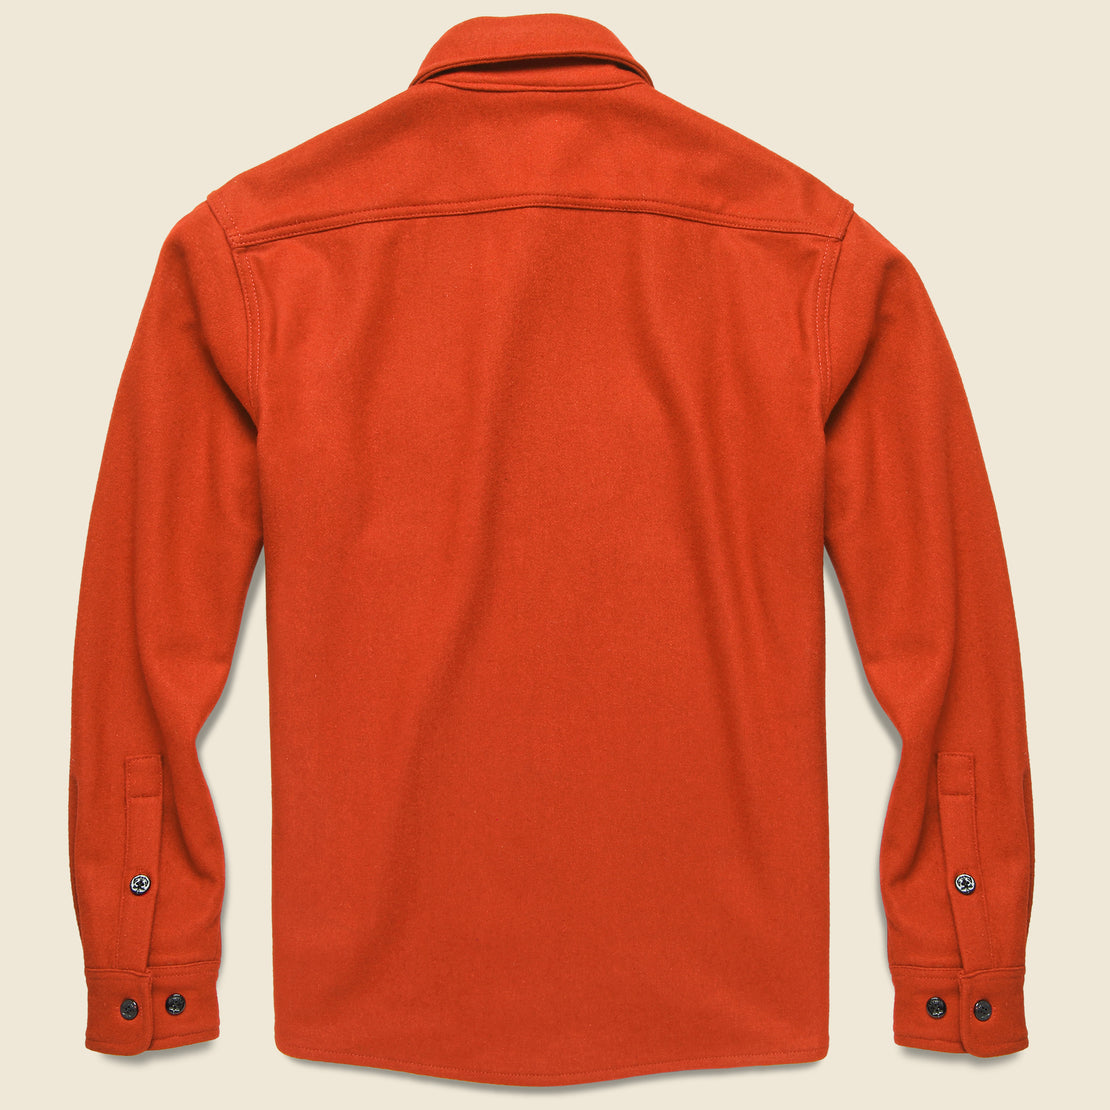 CPO Wool Shirt - Orange